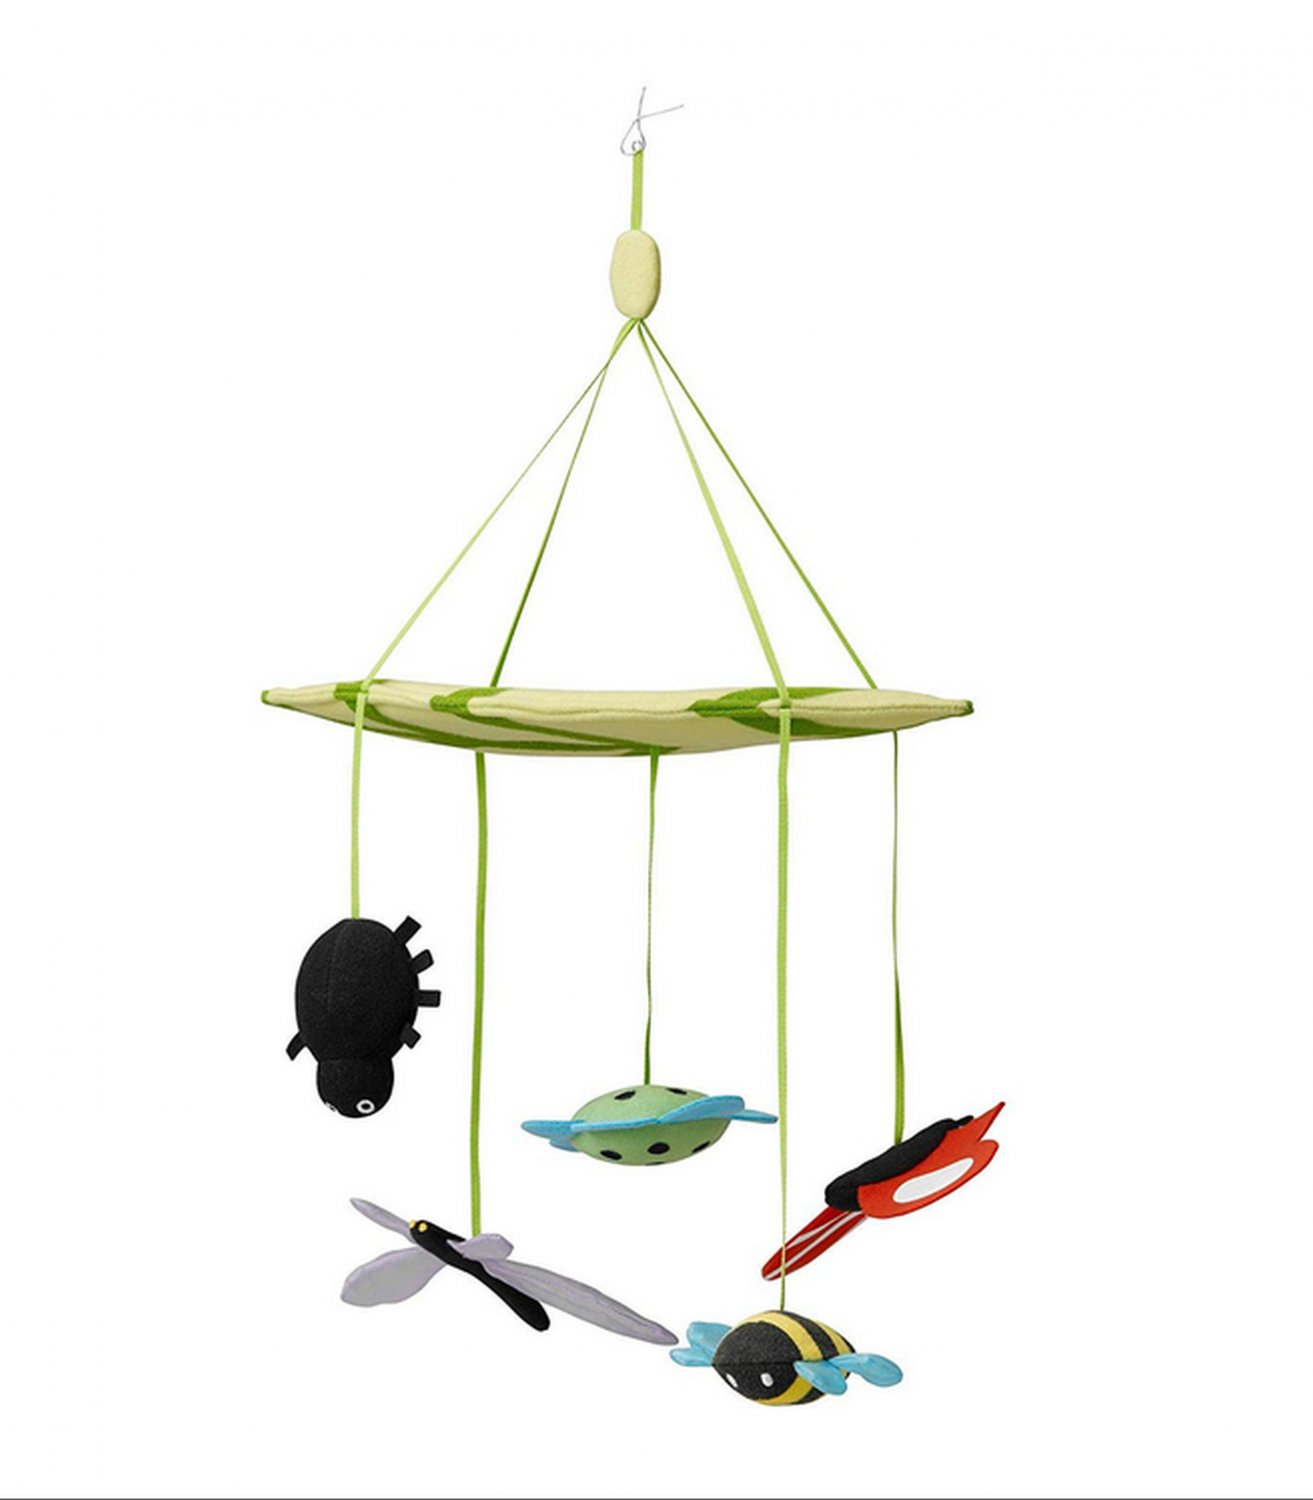 IKEA Leka Nursery MOBILE Bee Butterfly Leaf Flower Dragonfly Spider Play and Learn  Fun